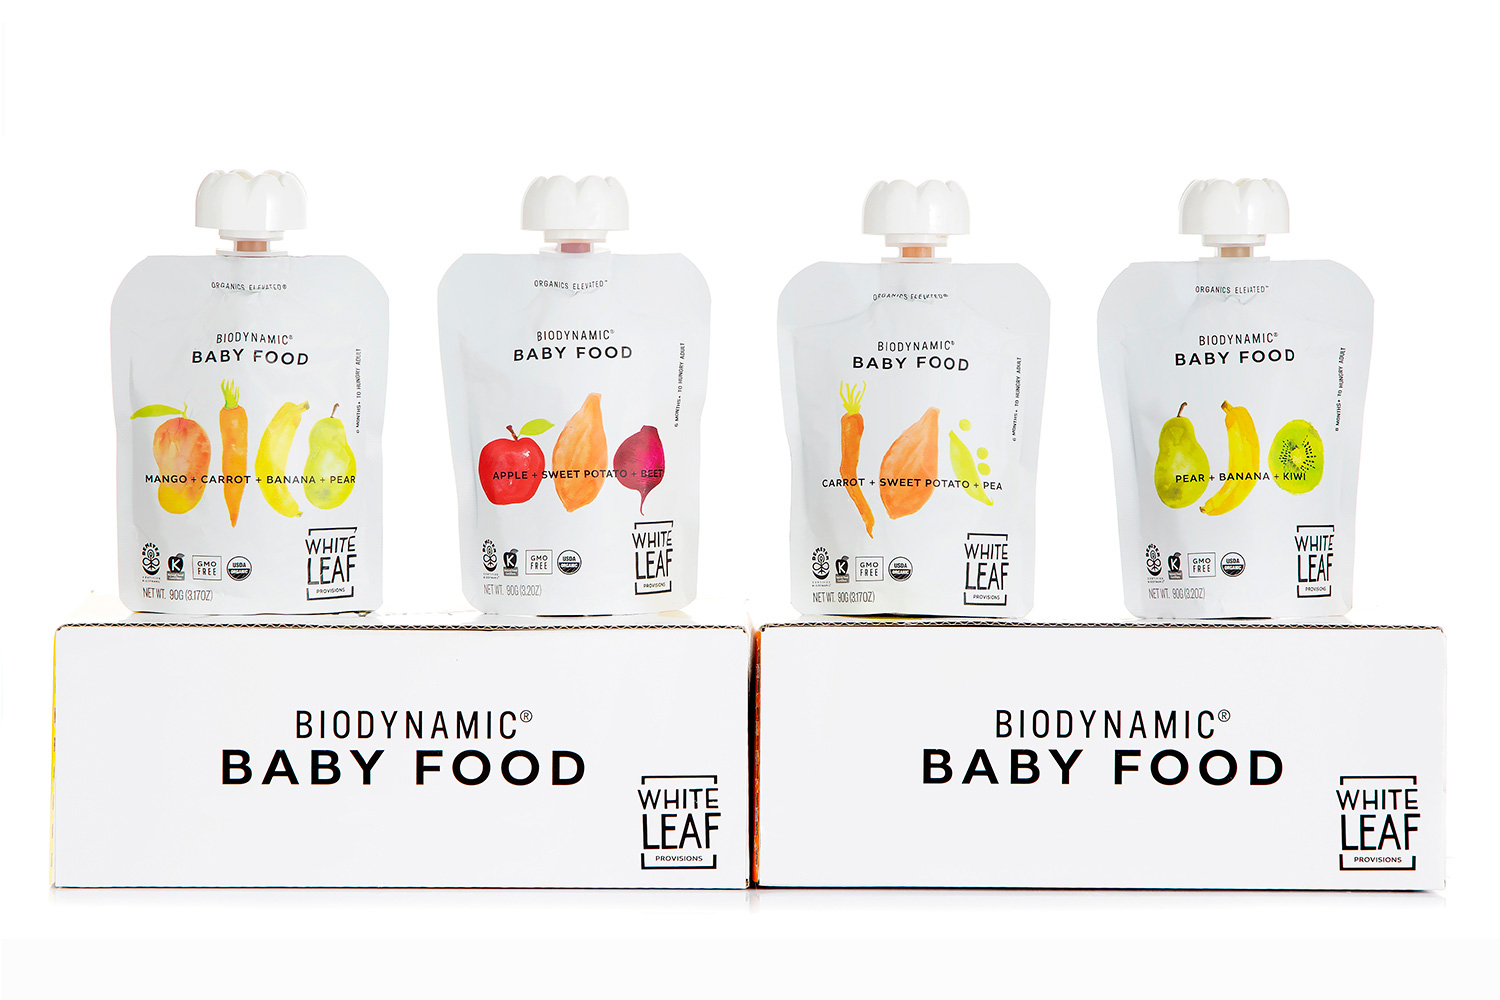 White Leaf Provisions Stand Out Organic Baby Food Brand Identity & Packaging Design